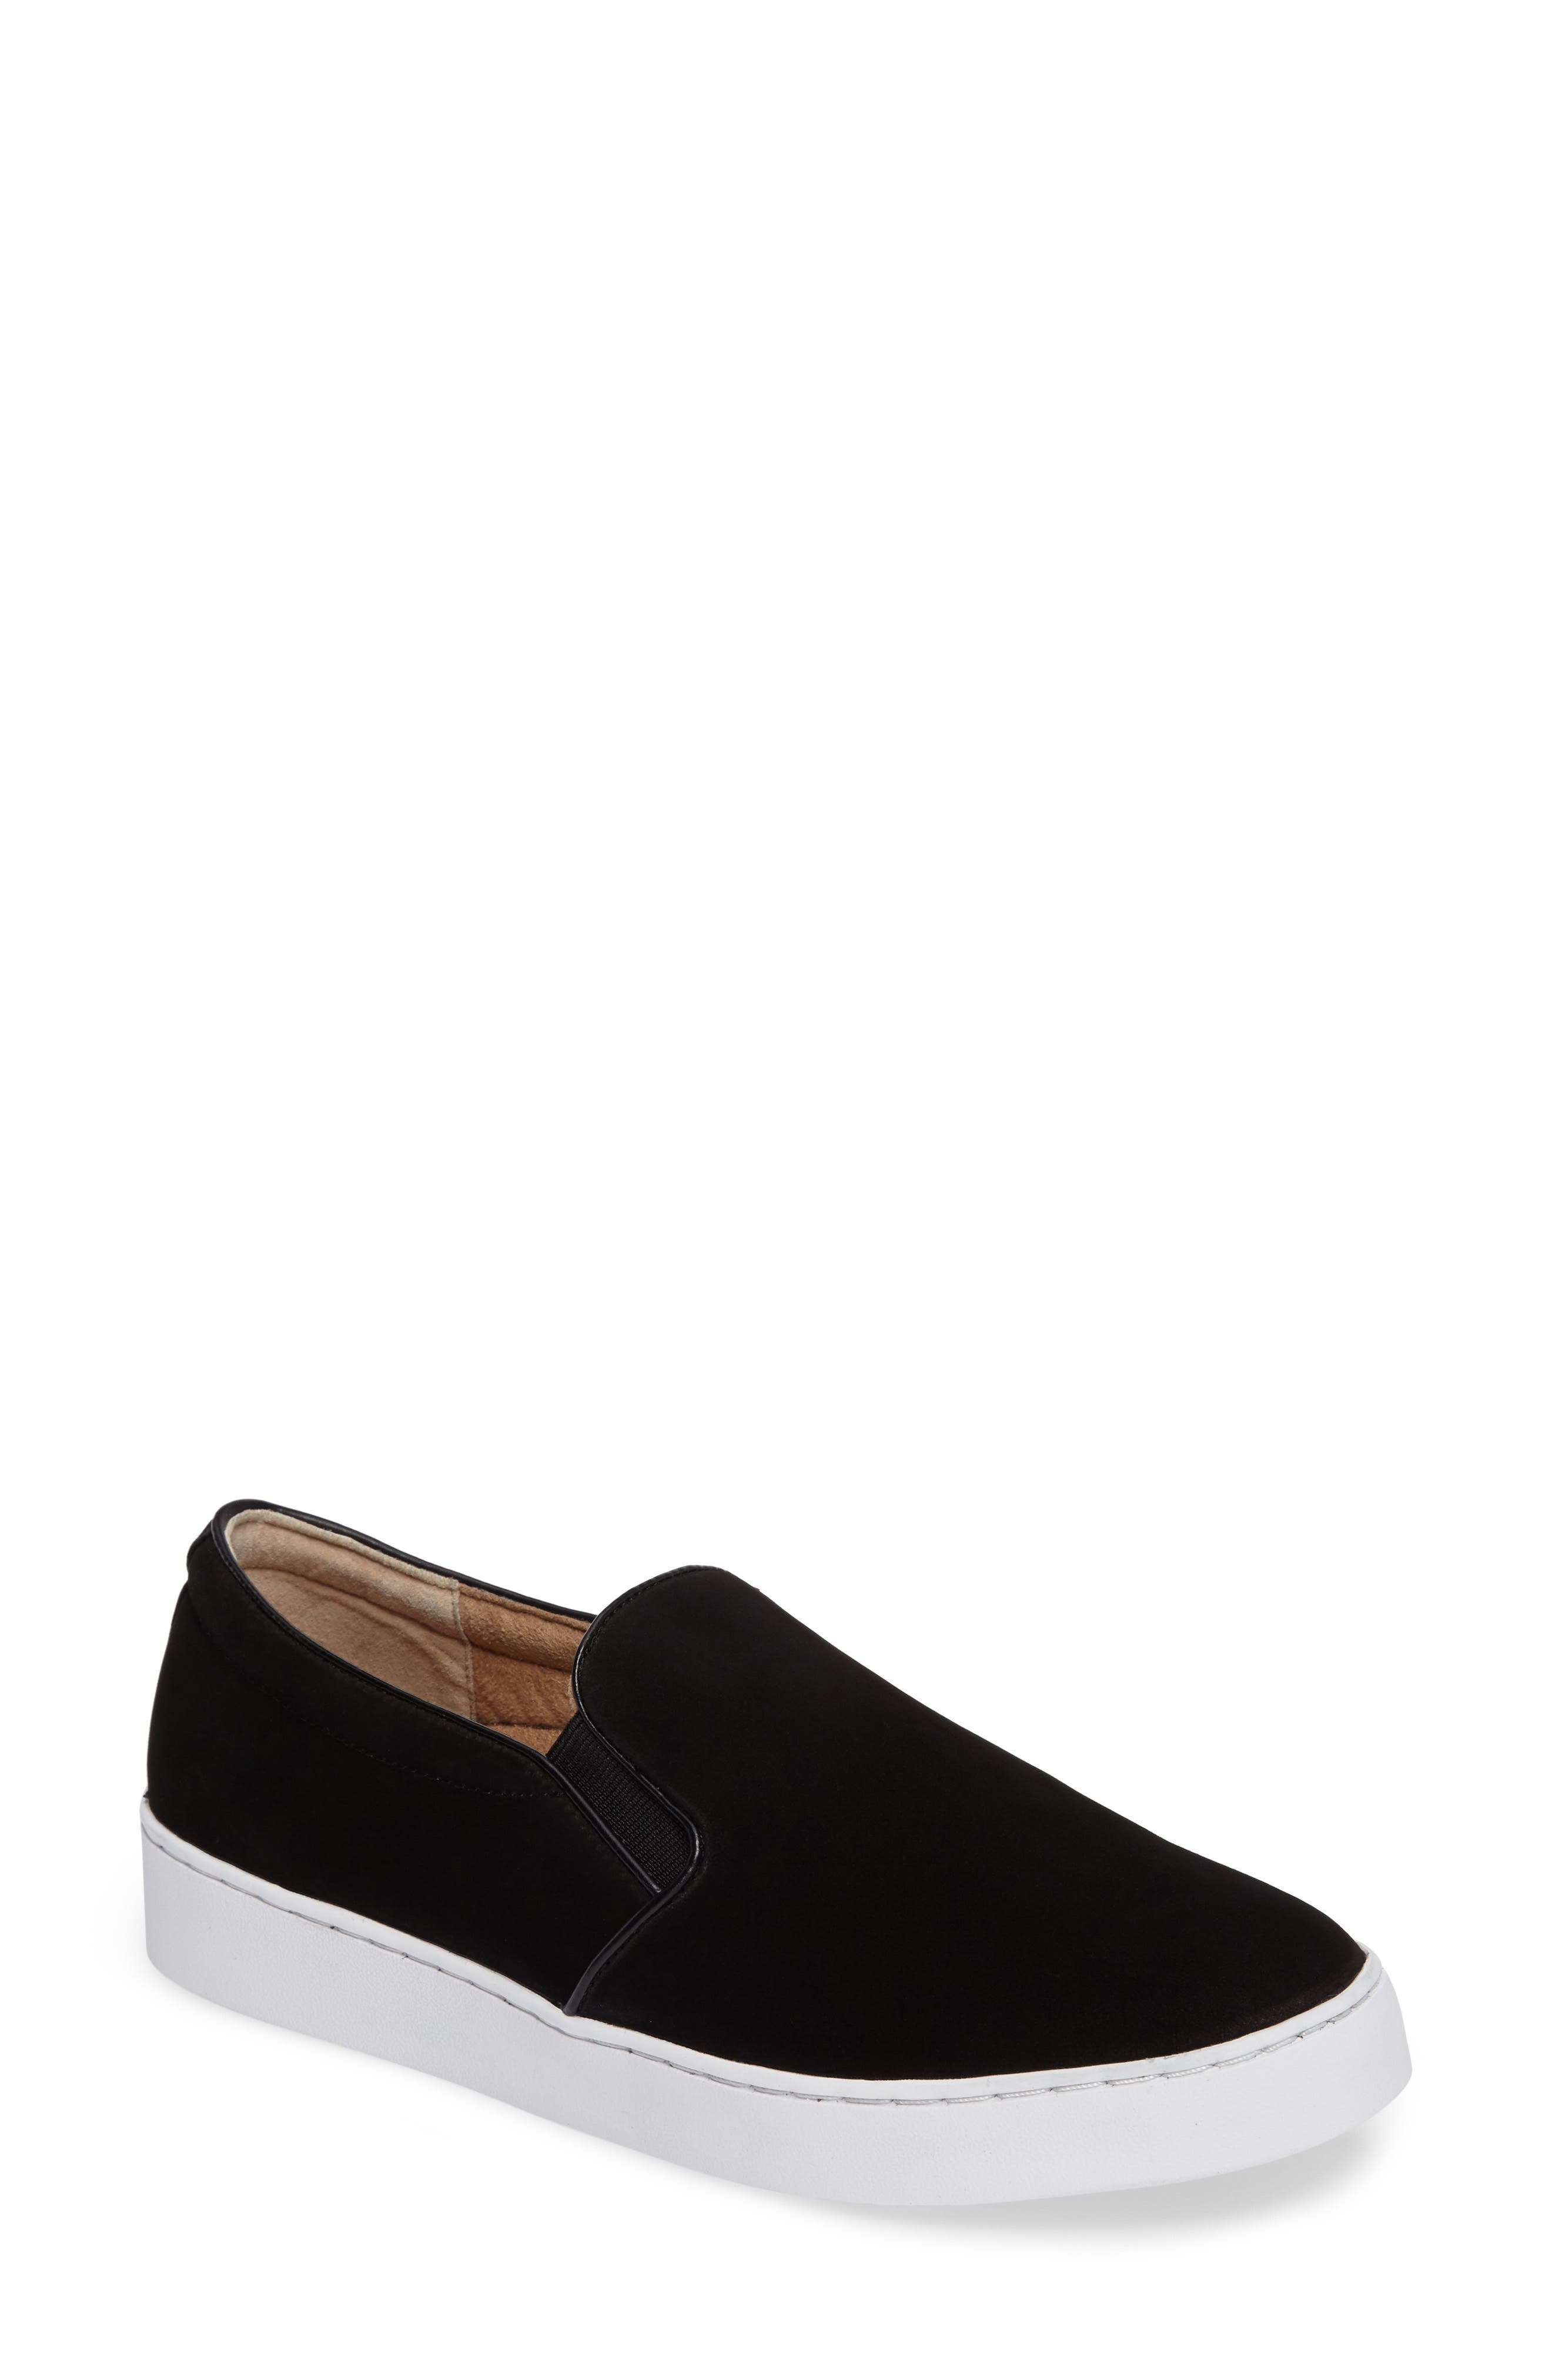 Double Gore Slip-On,                         Main,                         color, Black Suede